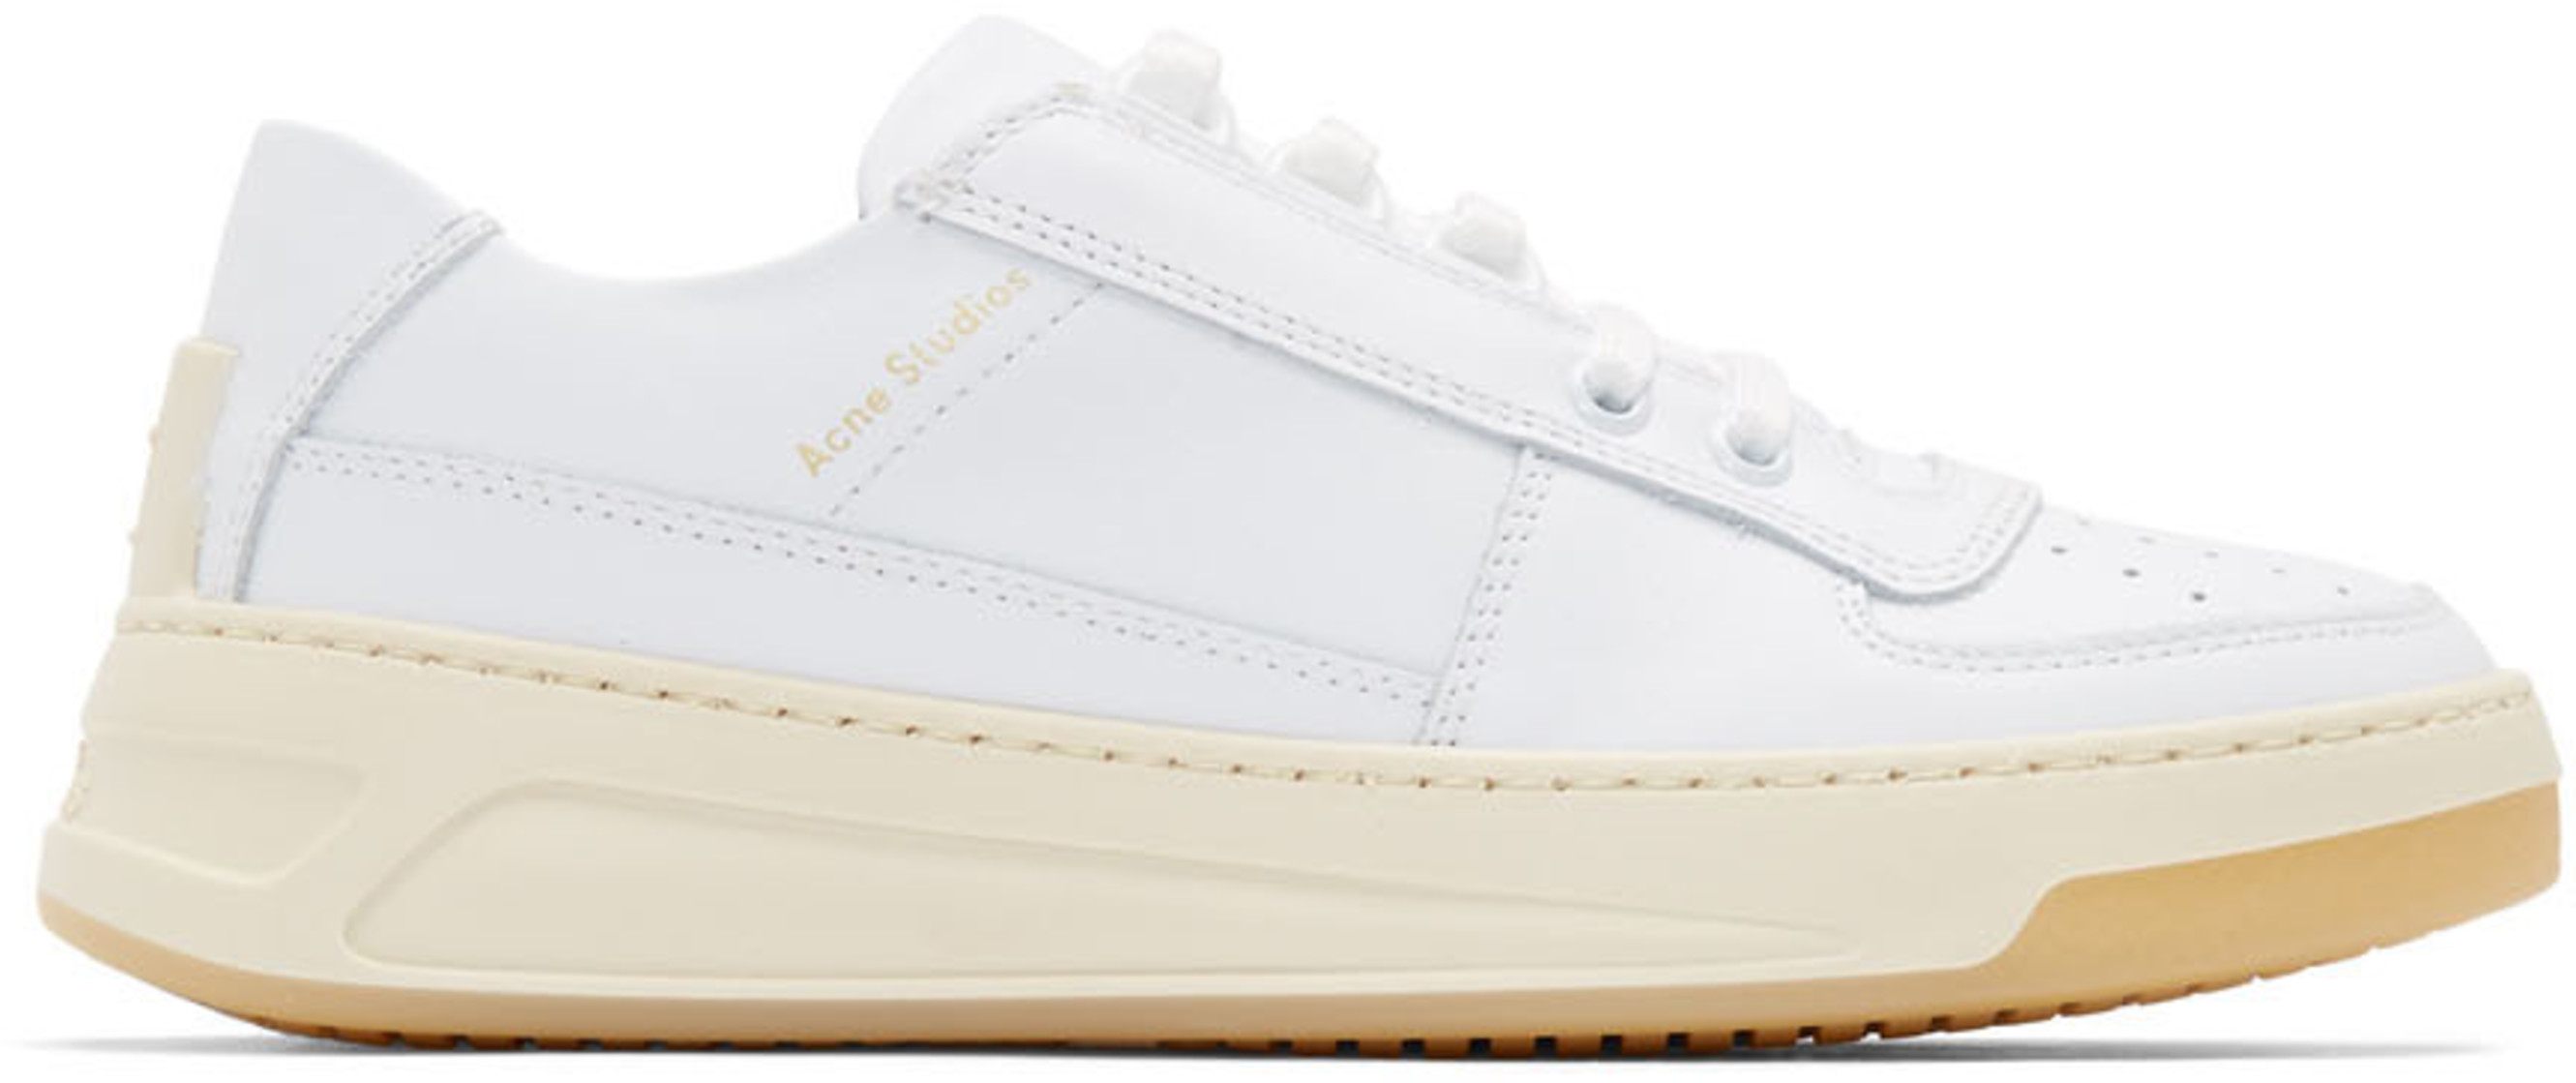 27582b731 Discover the latest collection of Balenciaga Triple S Shoes for Women at  the official online store.